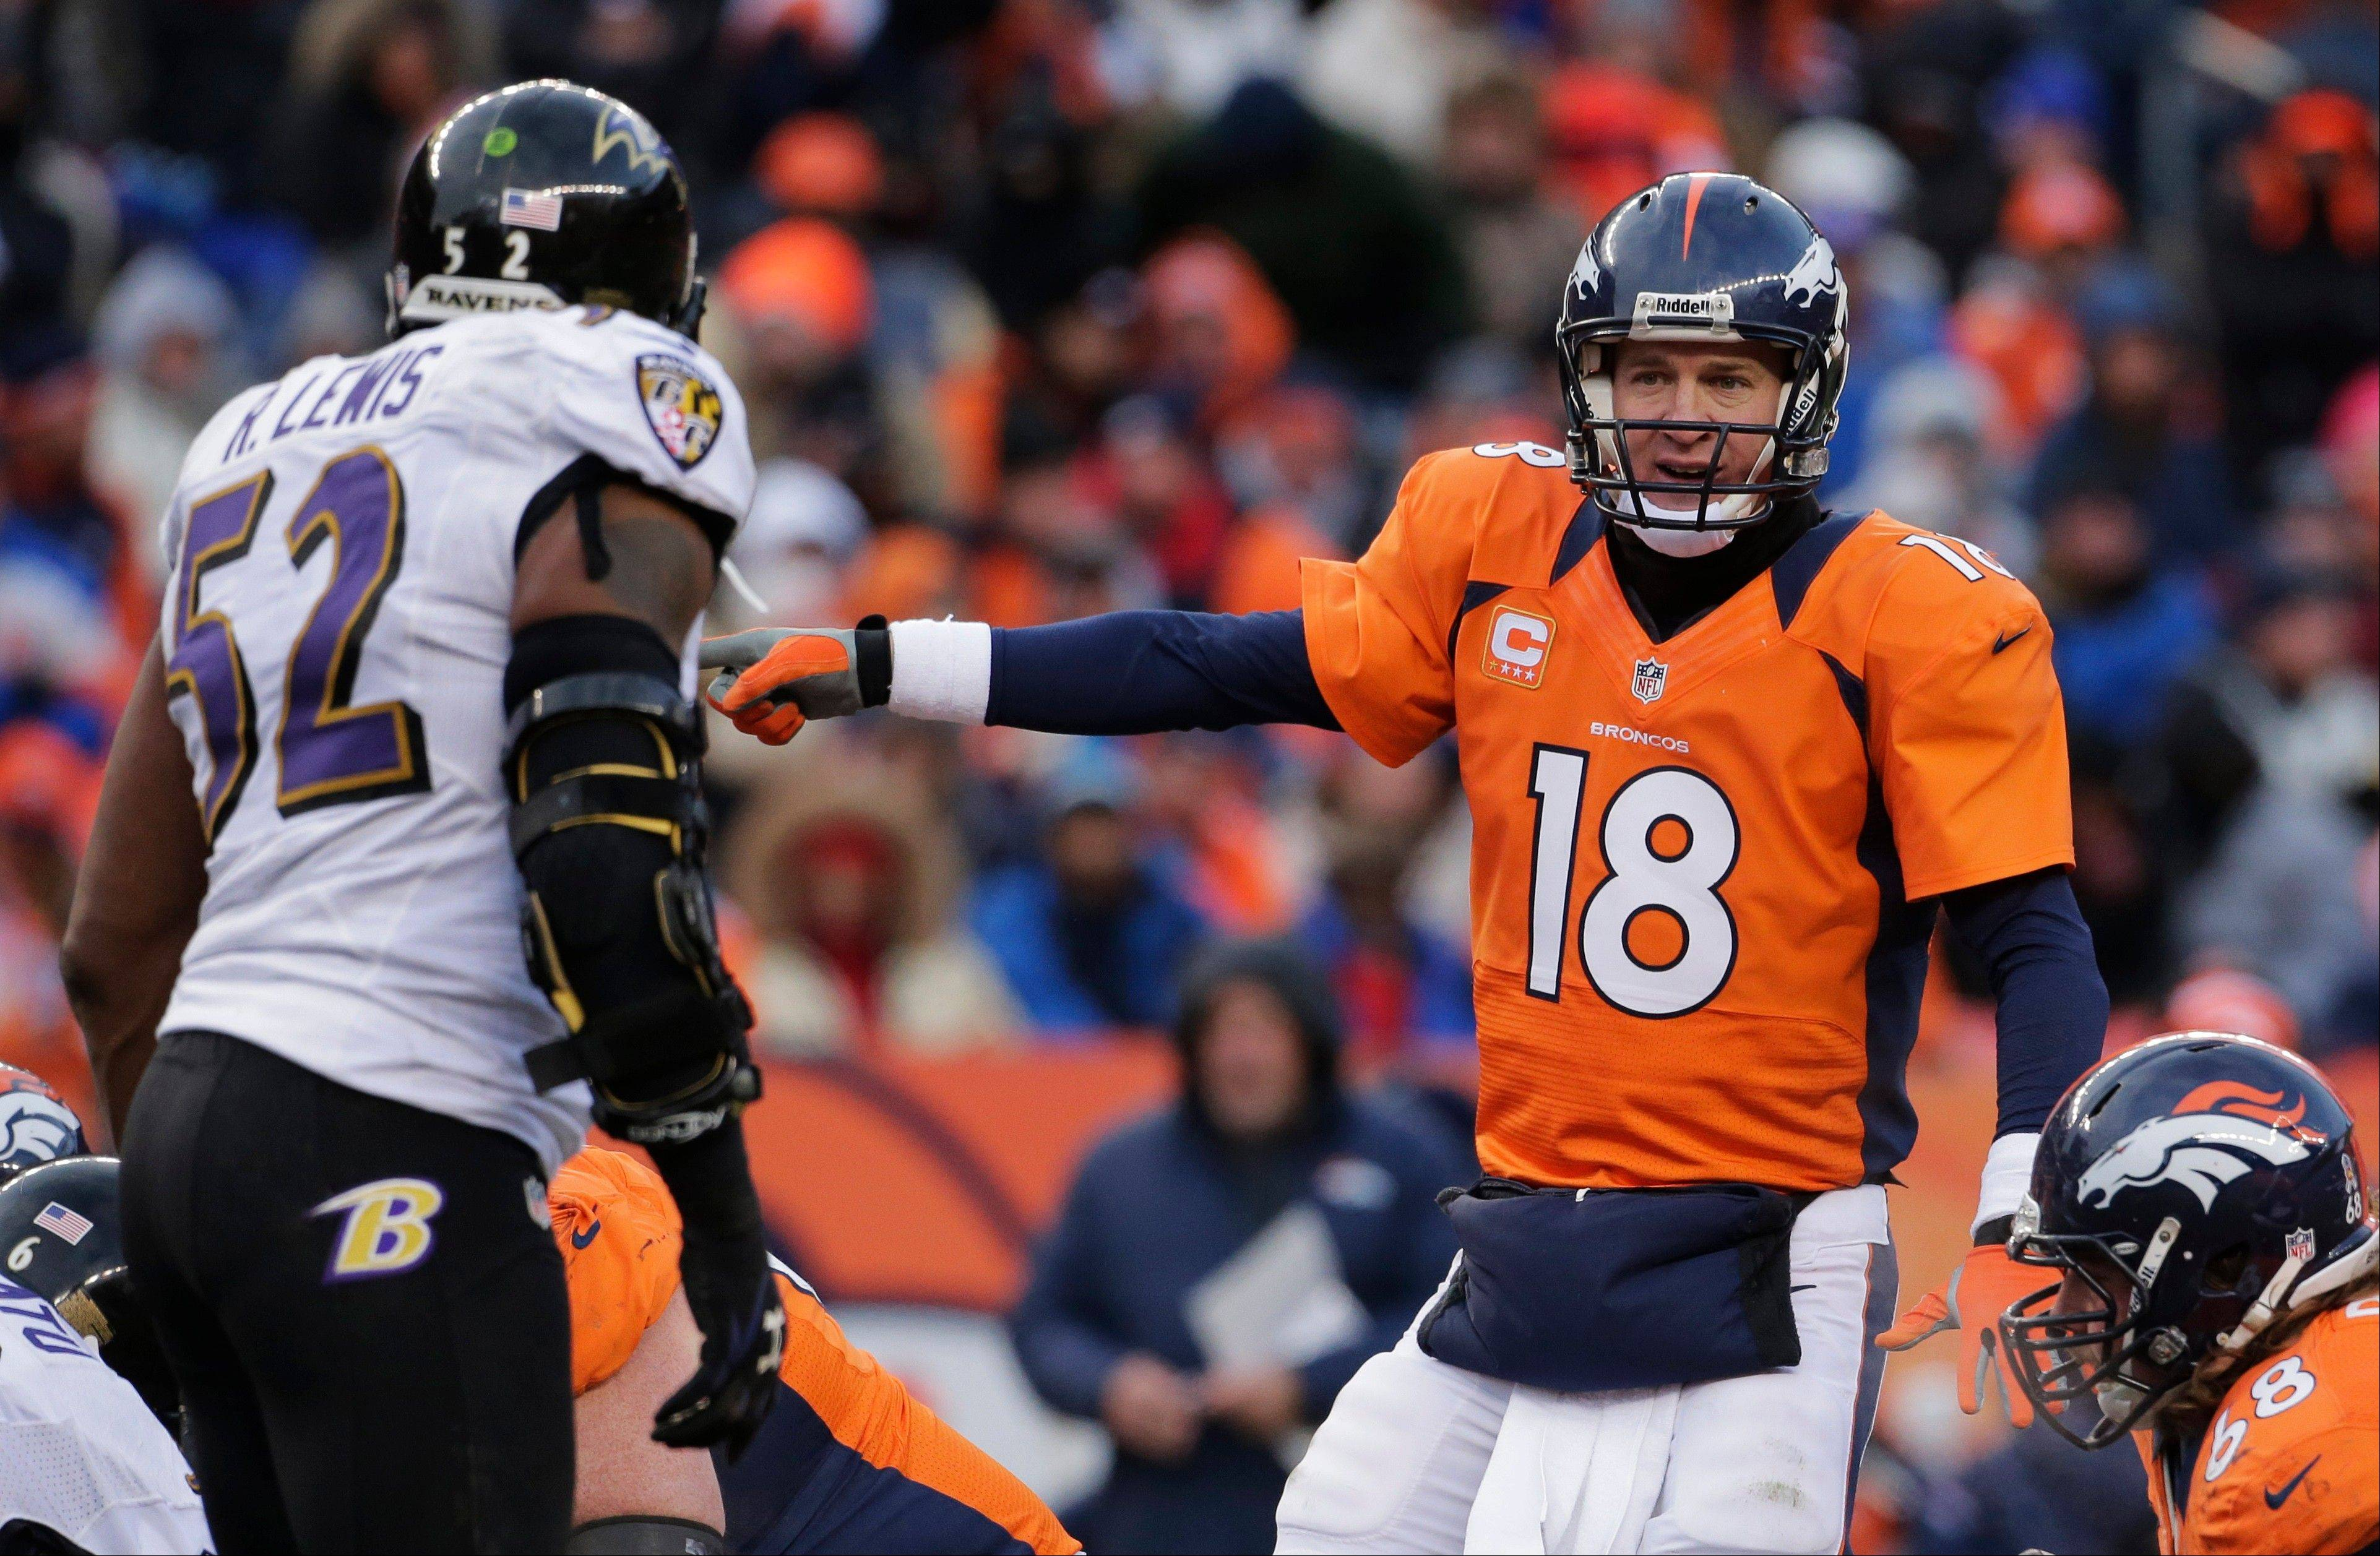 Baltimore Ravens linebacker Ray Lewis will move on in the playoffs, and Denver Broncos quarterback Peyton Manning's season is over. Manning has lost eight times in the first-round.